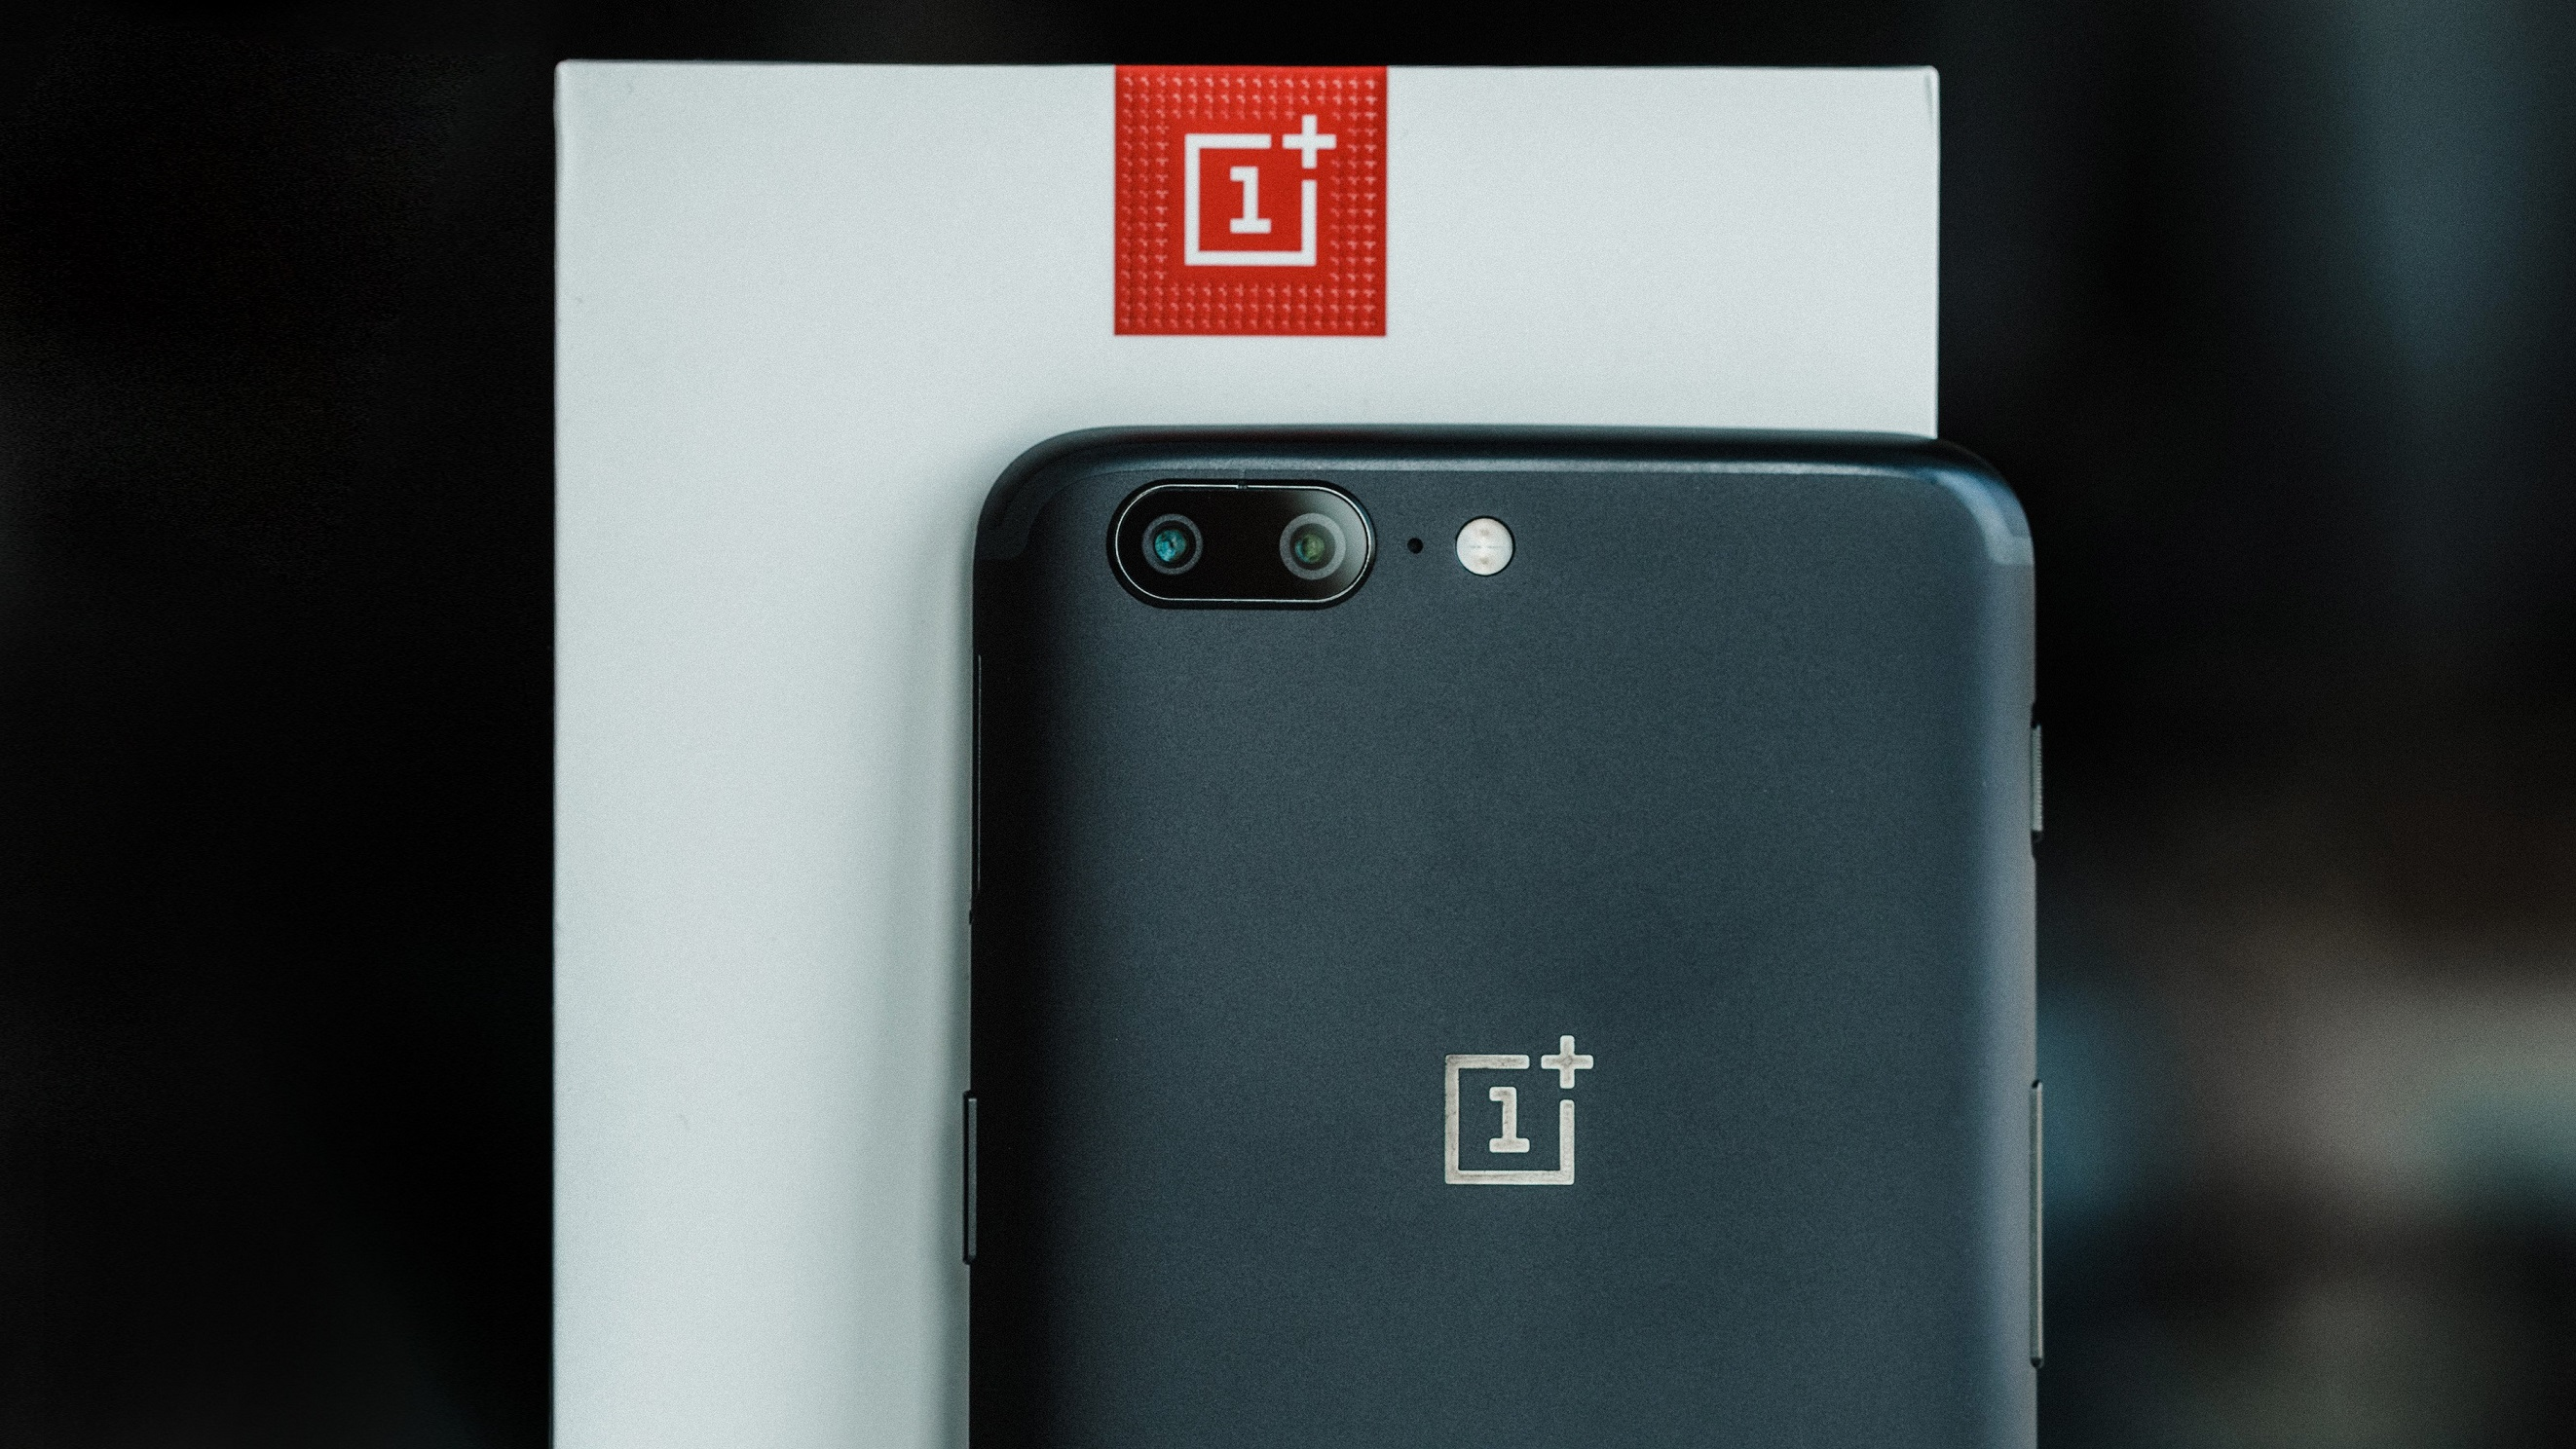 Here's the full specs of the OnePlus 5T